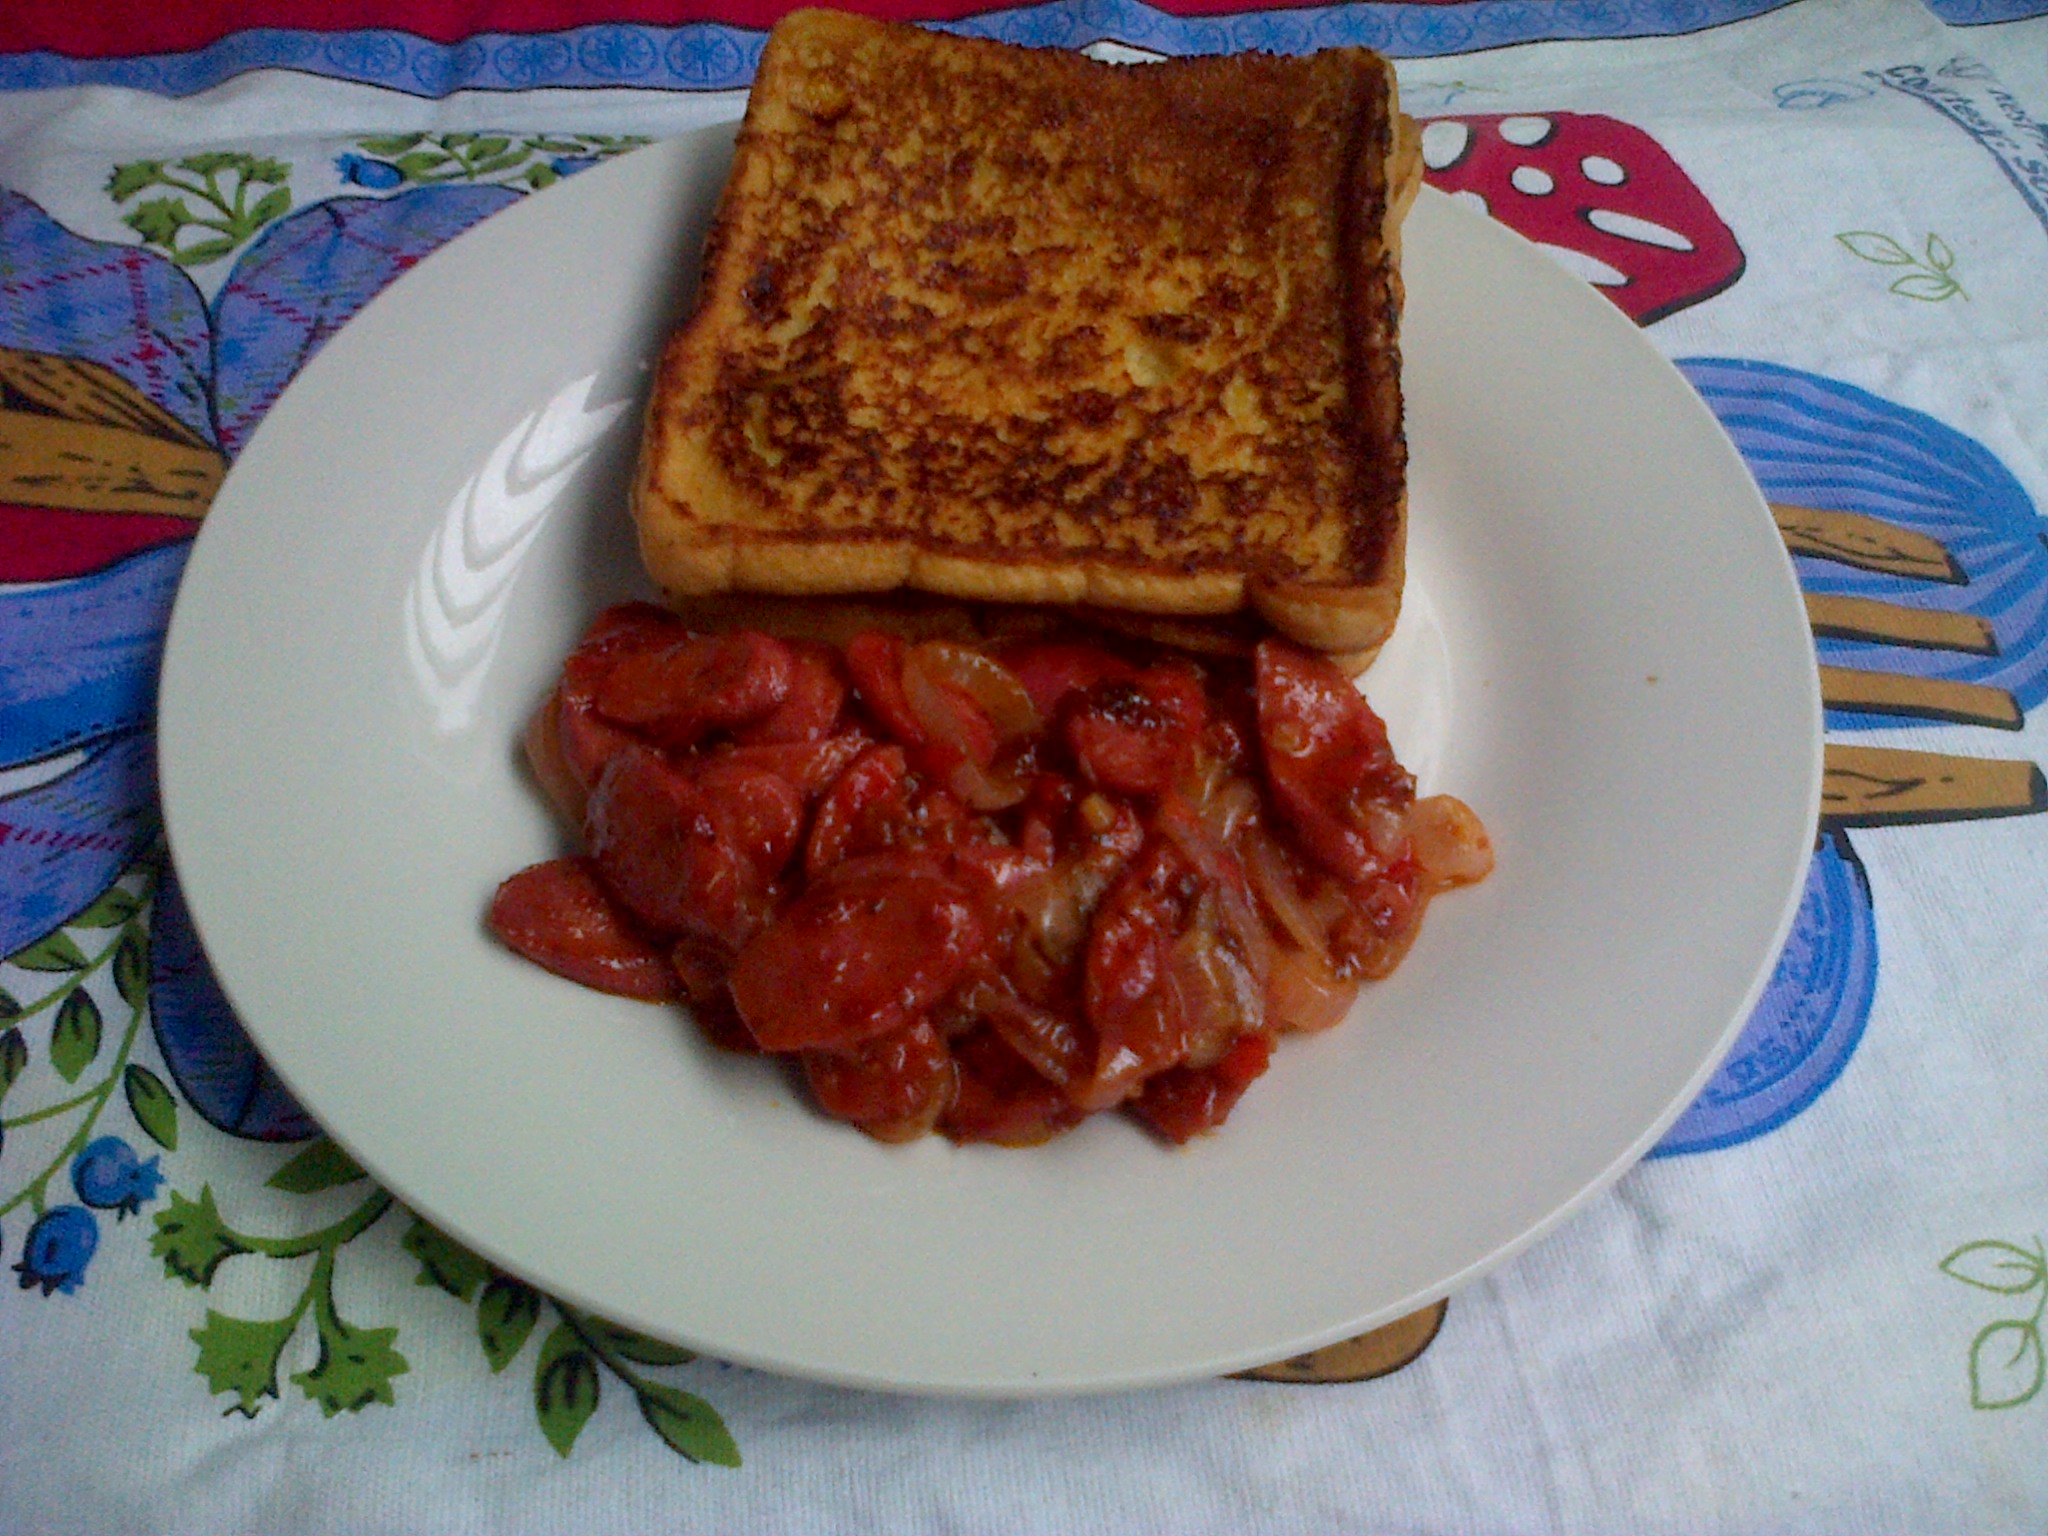 Golden French toast and sautéed sausages